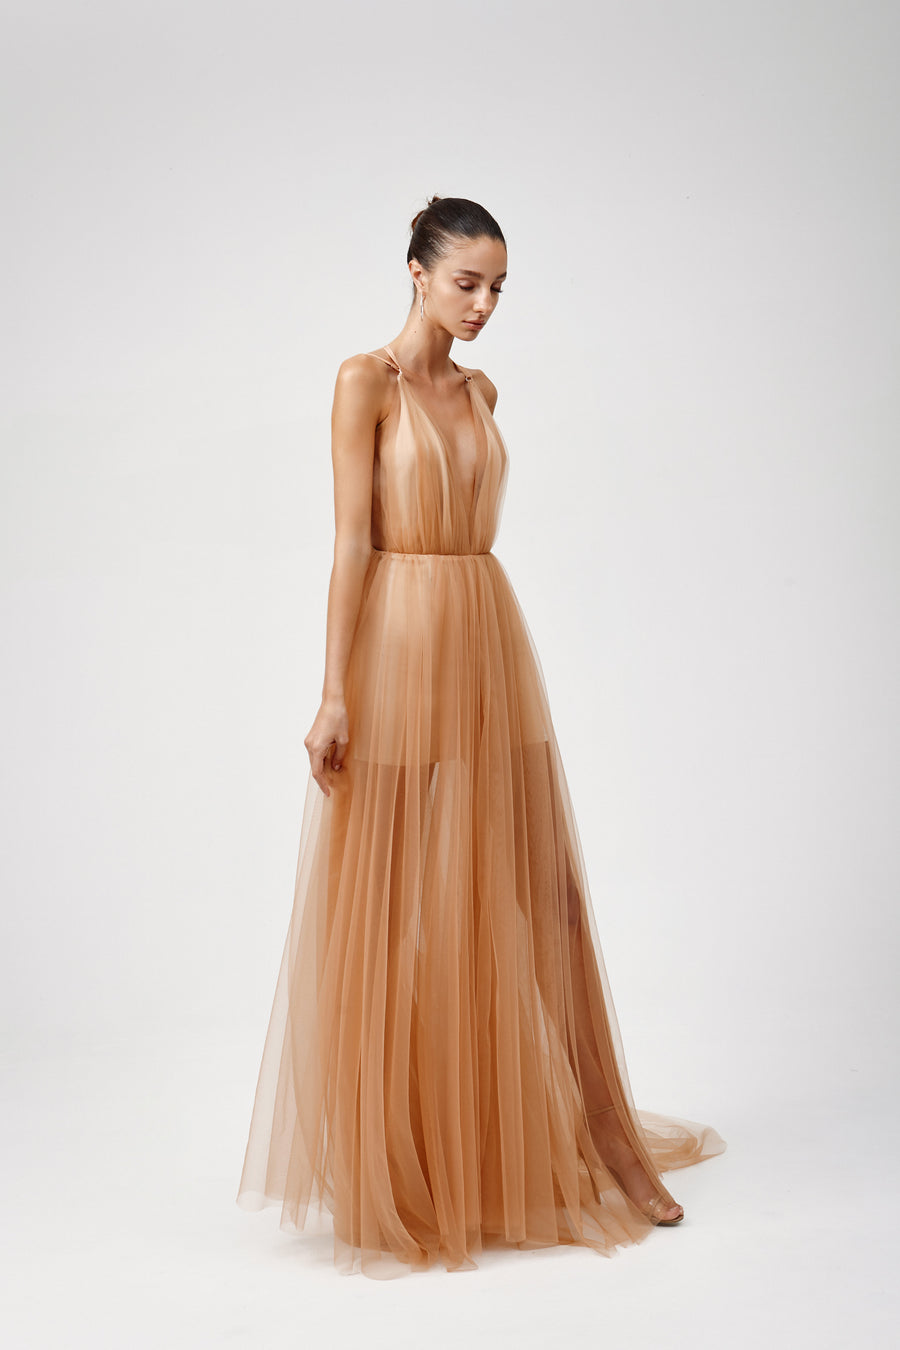 Amalie Dress - Apricot Cream